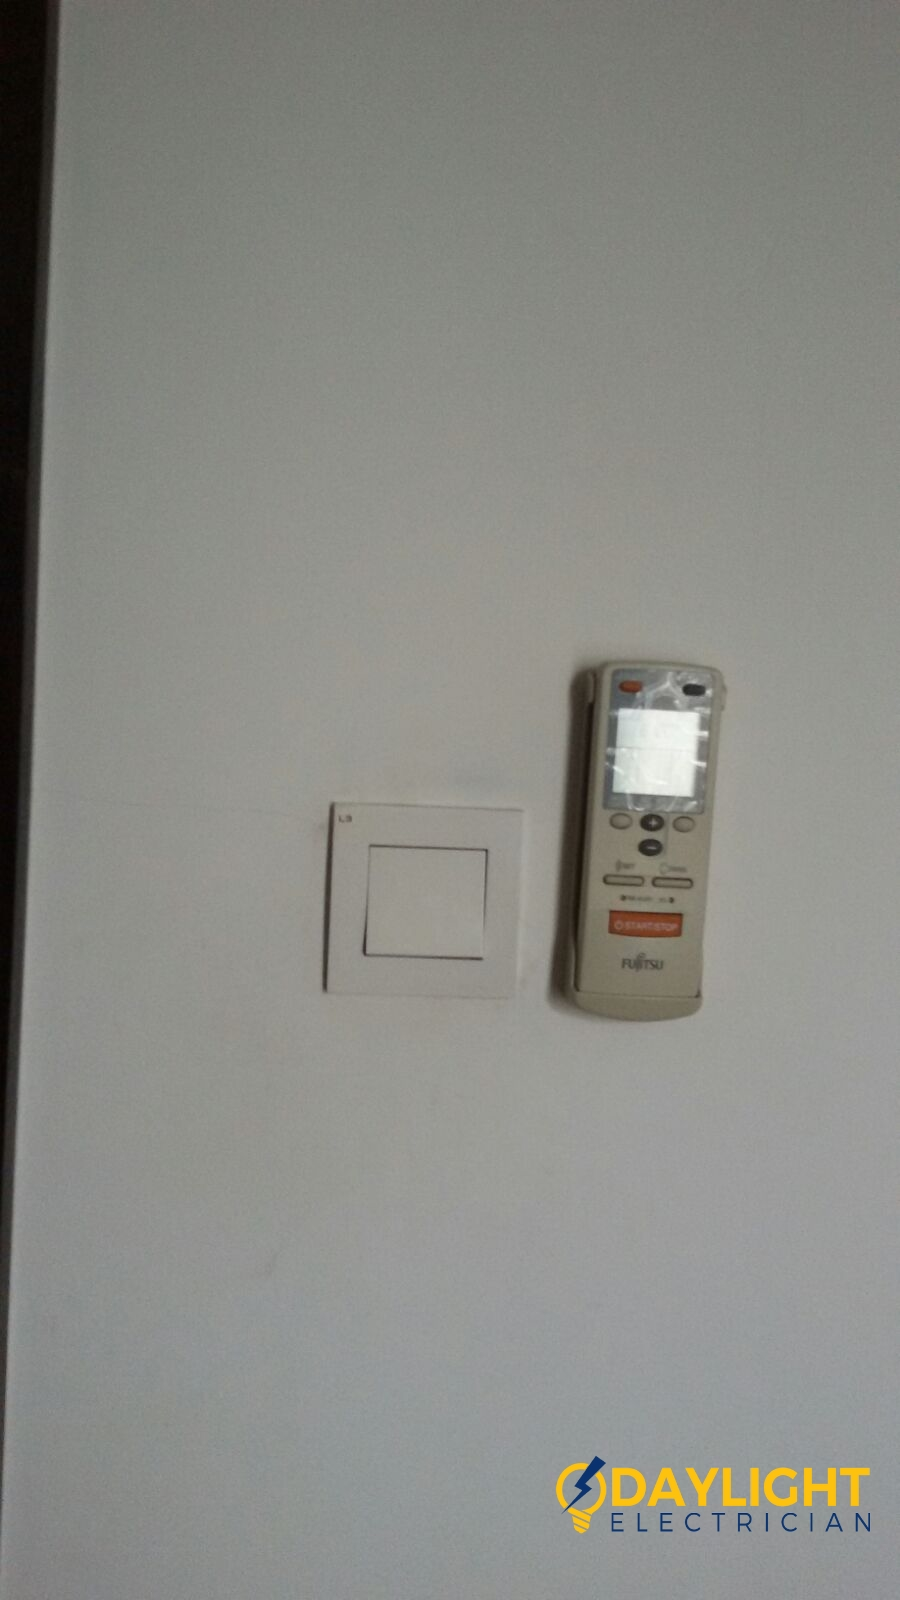 Change-light-switches-light-bulbs-electrician-singapore-landed-cashew-road-3_wm